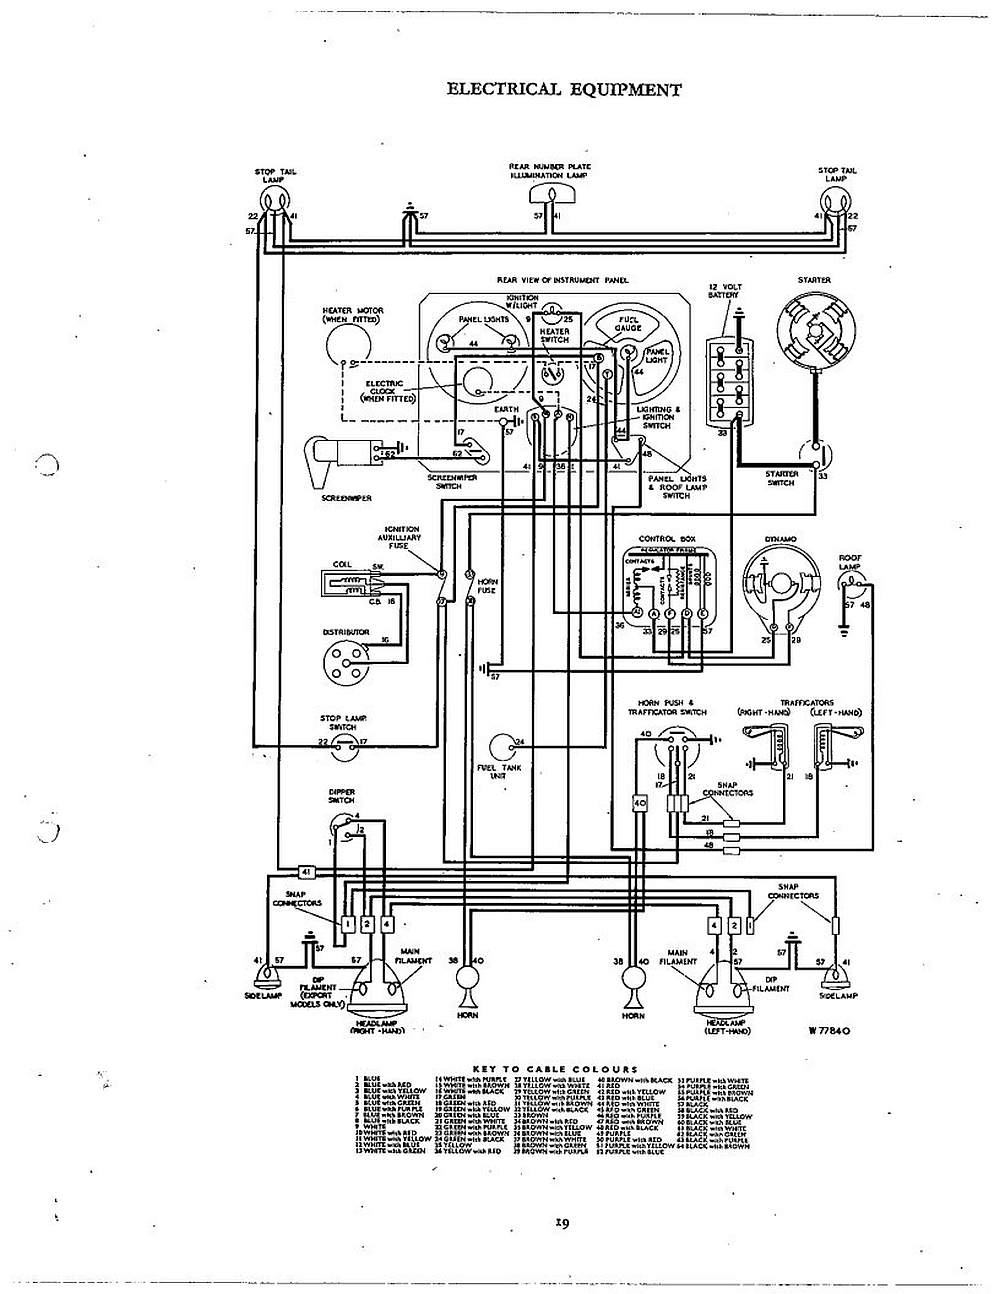 Triumph Spitfire Wiring Diagram Free Download Wiring Diagram ...